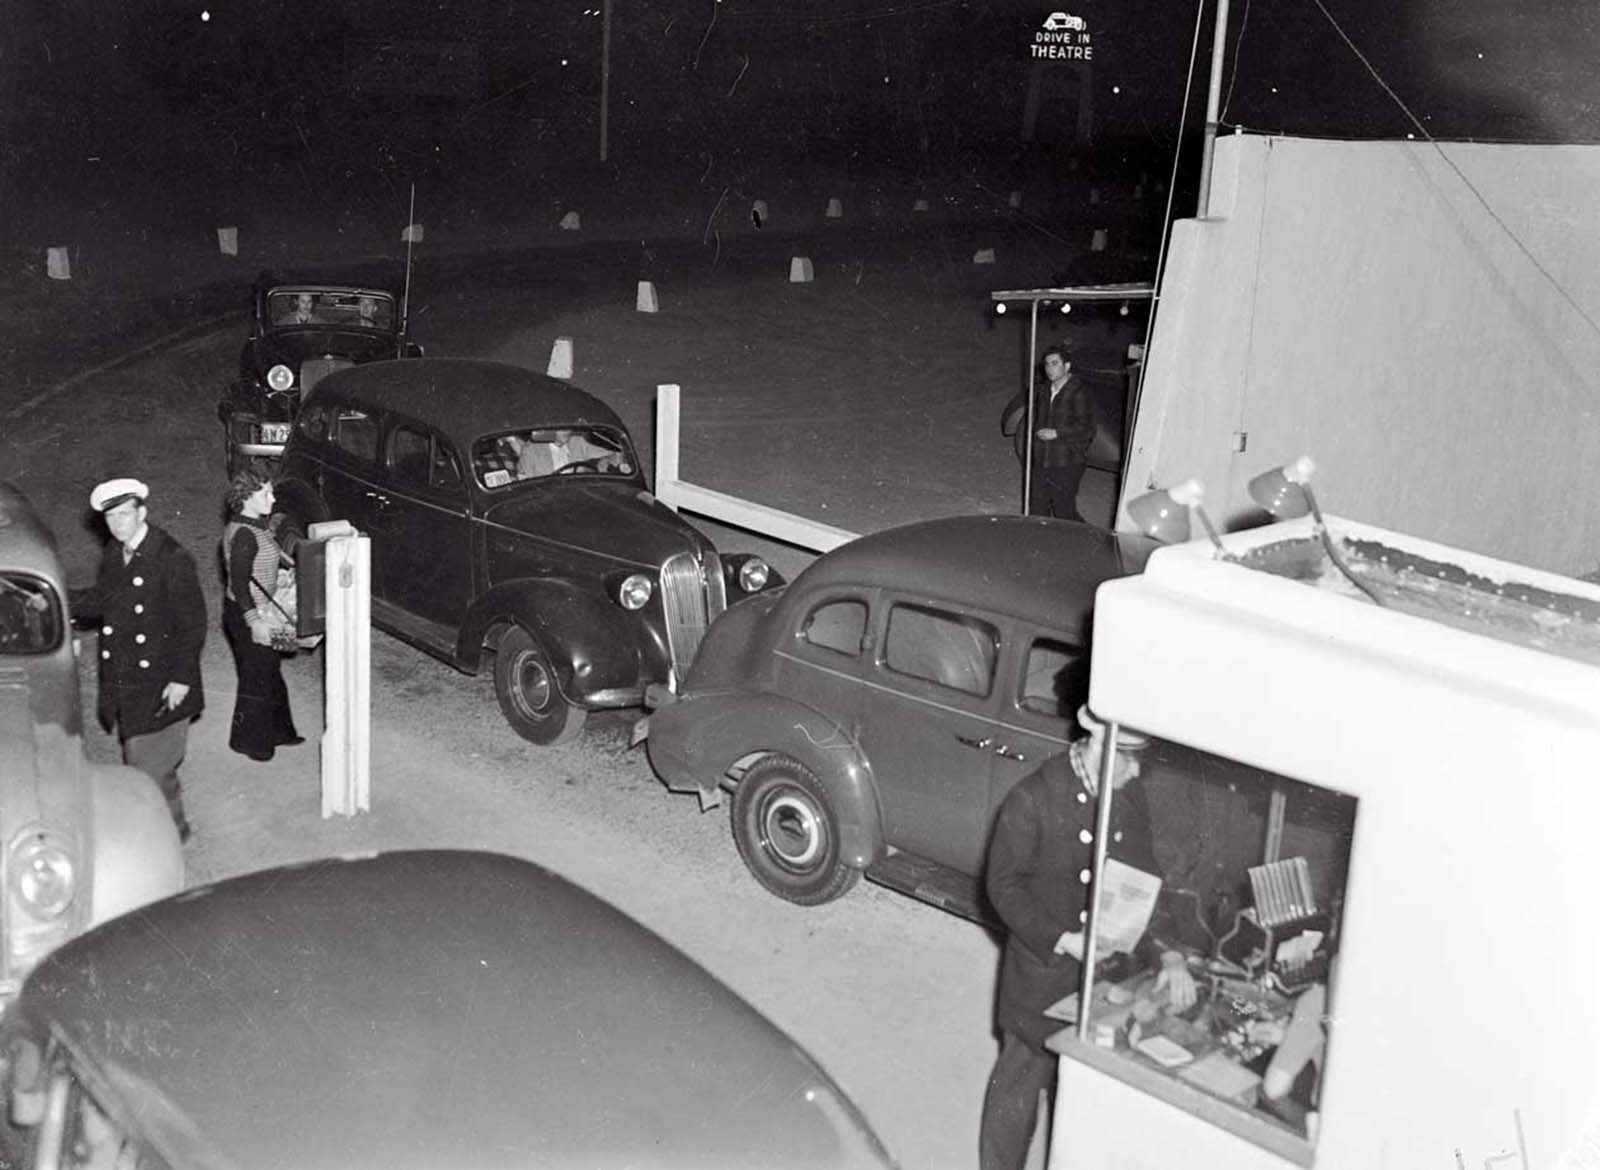 "(Original Caption) The Cinemotor Theater. Los Angeles, Calif.: Motoring and motion pictures achieve a happy wedding in the Drive-In Theater in Los Angeles. The theater is a parking lot with graduated tiers from which motorists seated in their cars, watch the films projected on a giant screen. Synchronized amplifiers in the front of each car make speech audible in all parts of the lot. Here's the entrance to the unique theater, showing the cashier's wicket, and ""butcher-girl"" in front."